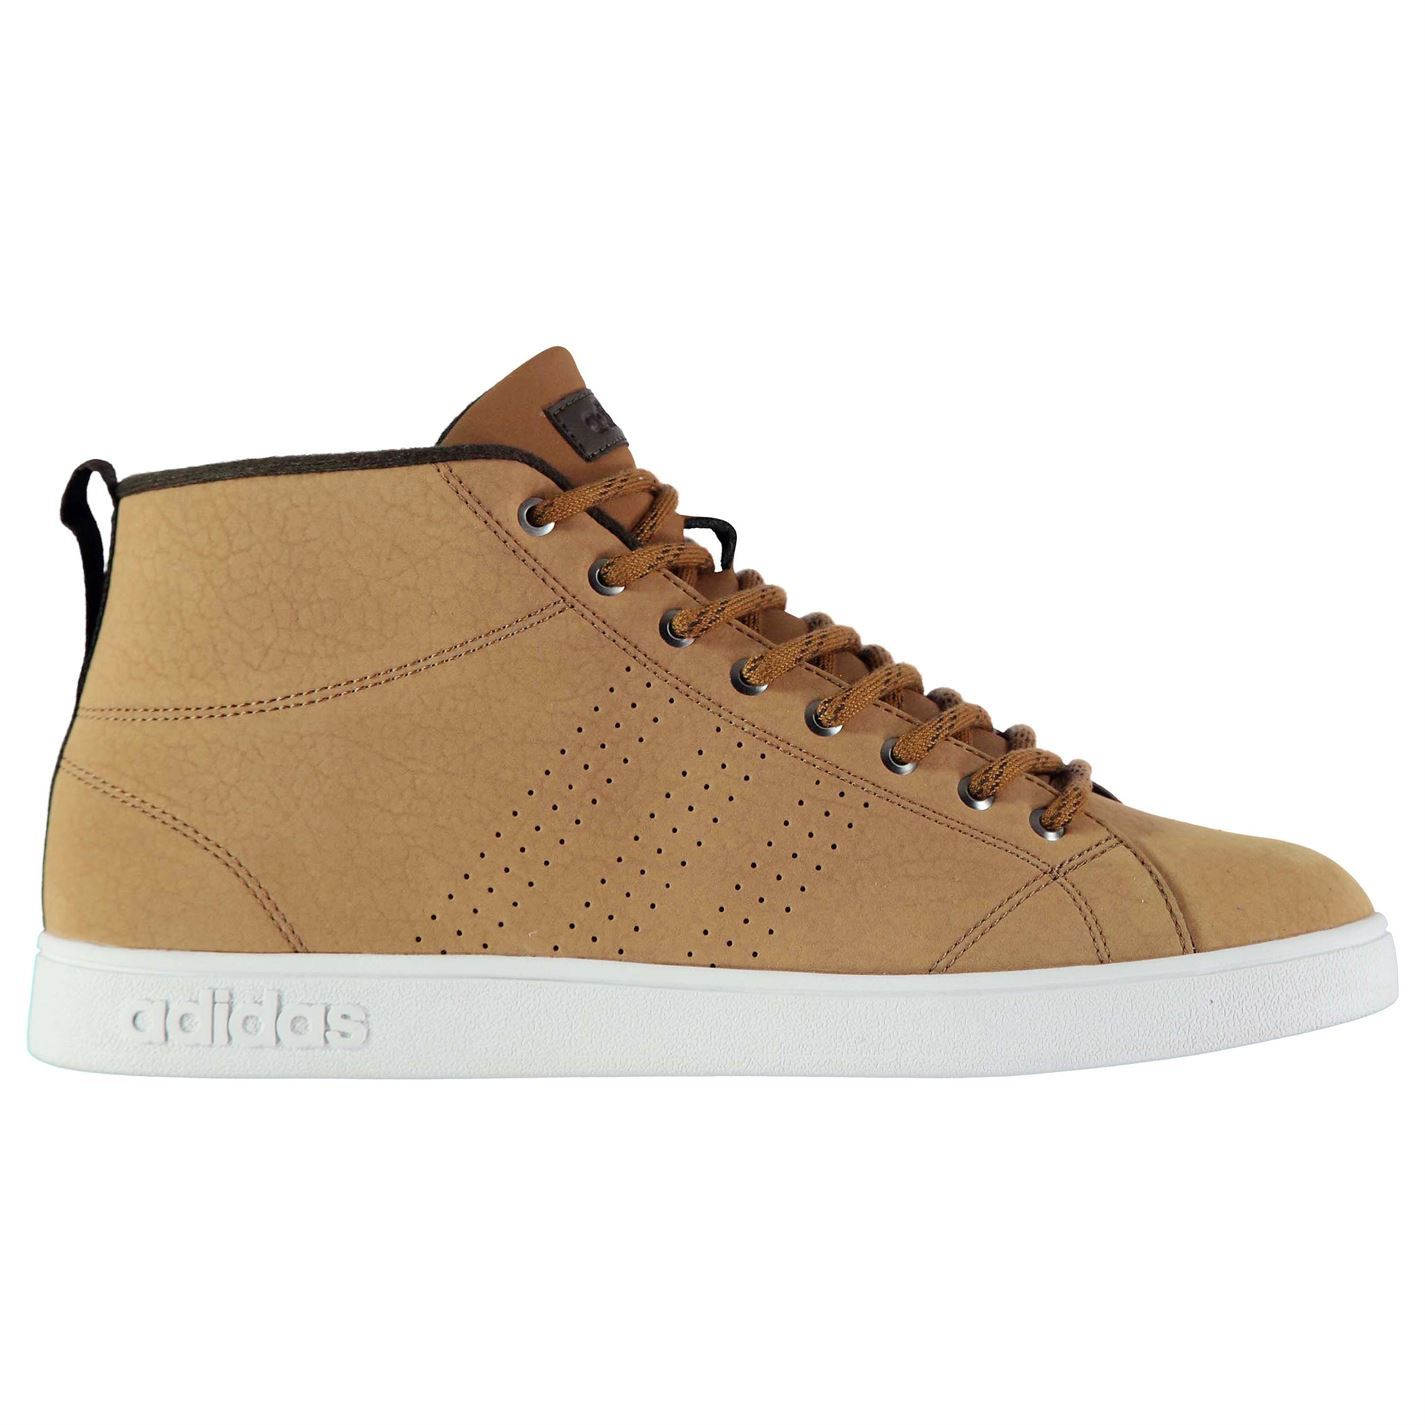 Adidas  Advantage Mid Nubuck Sneakers  Adidas Uomo Gents High Top Laces Fastened Padded 553463